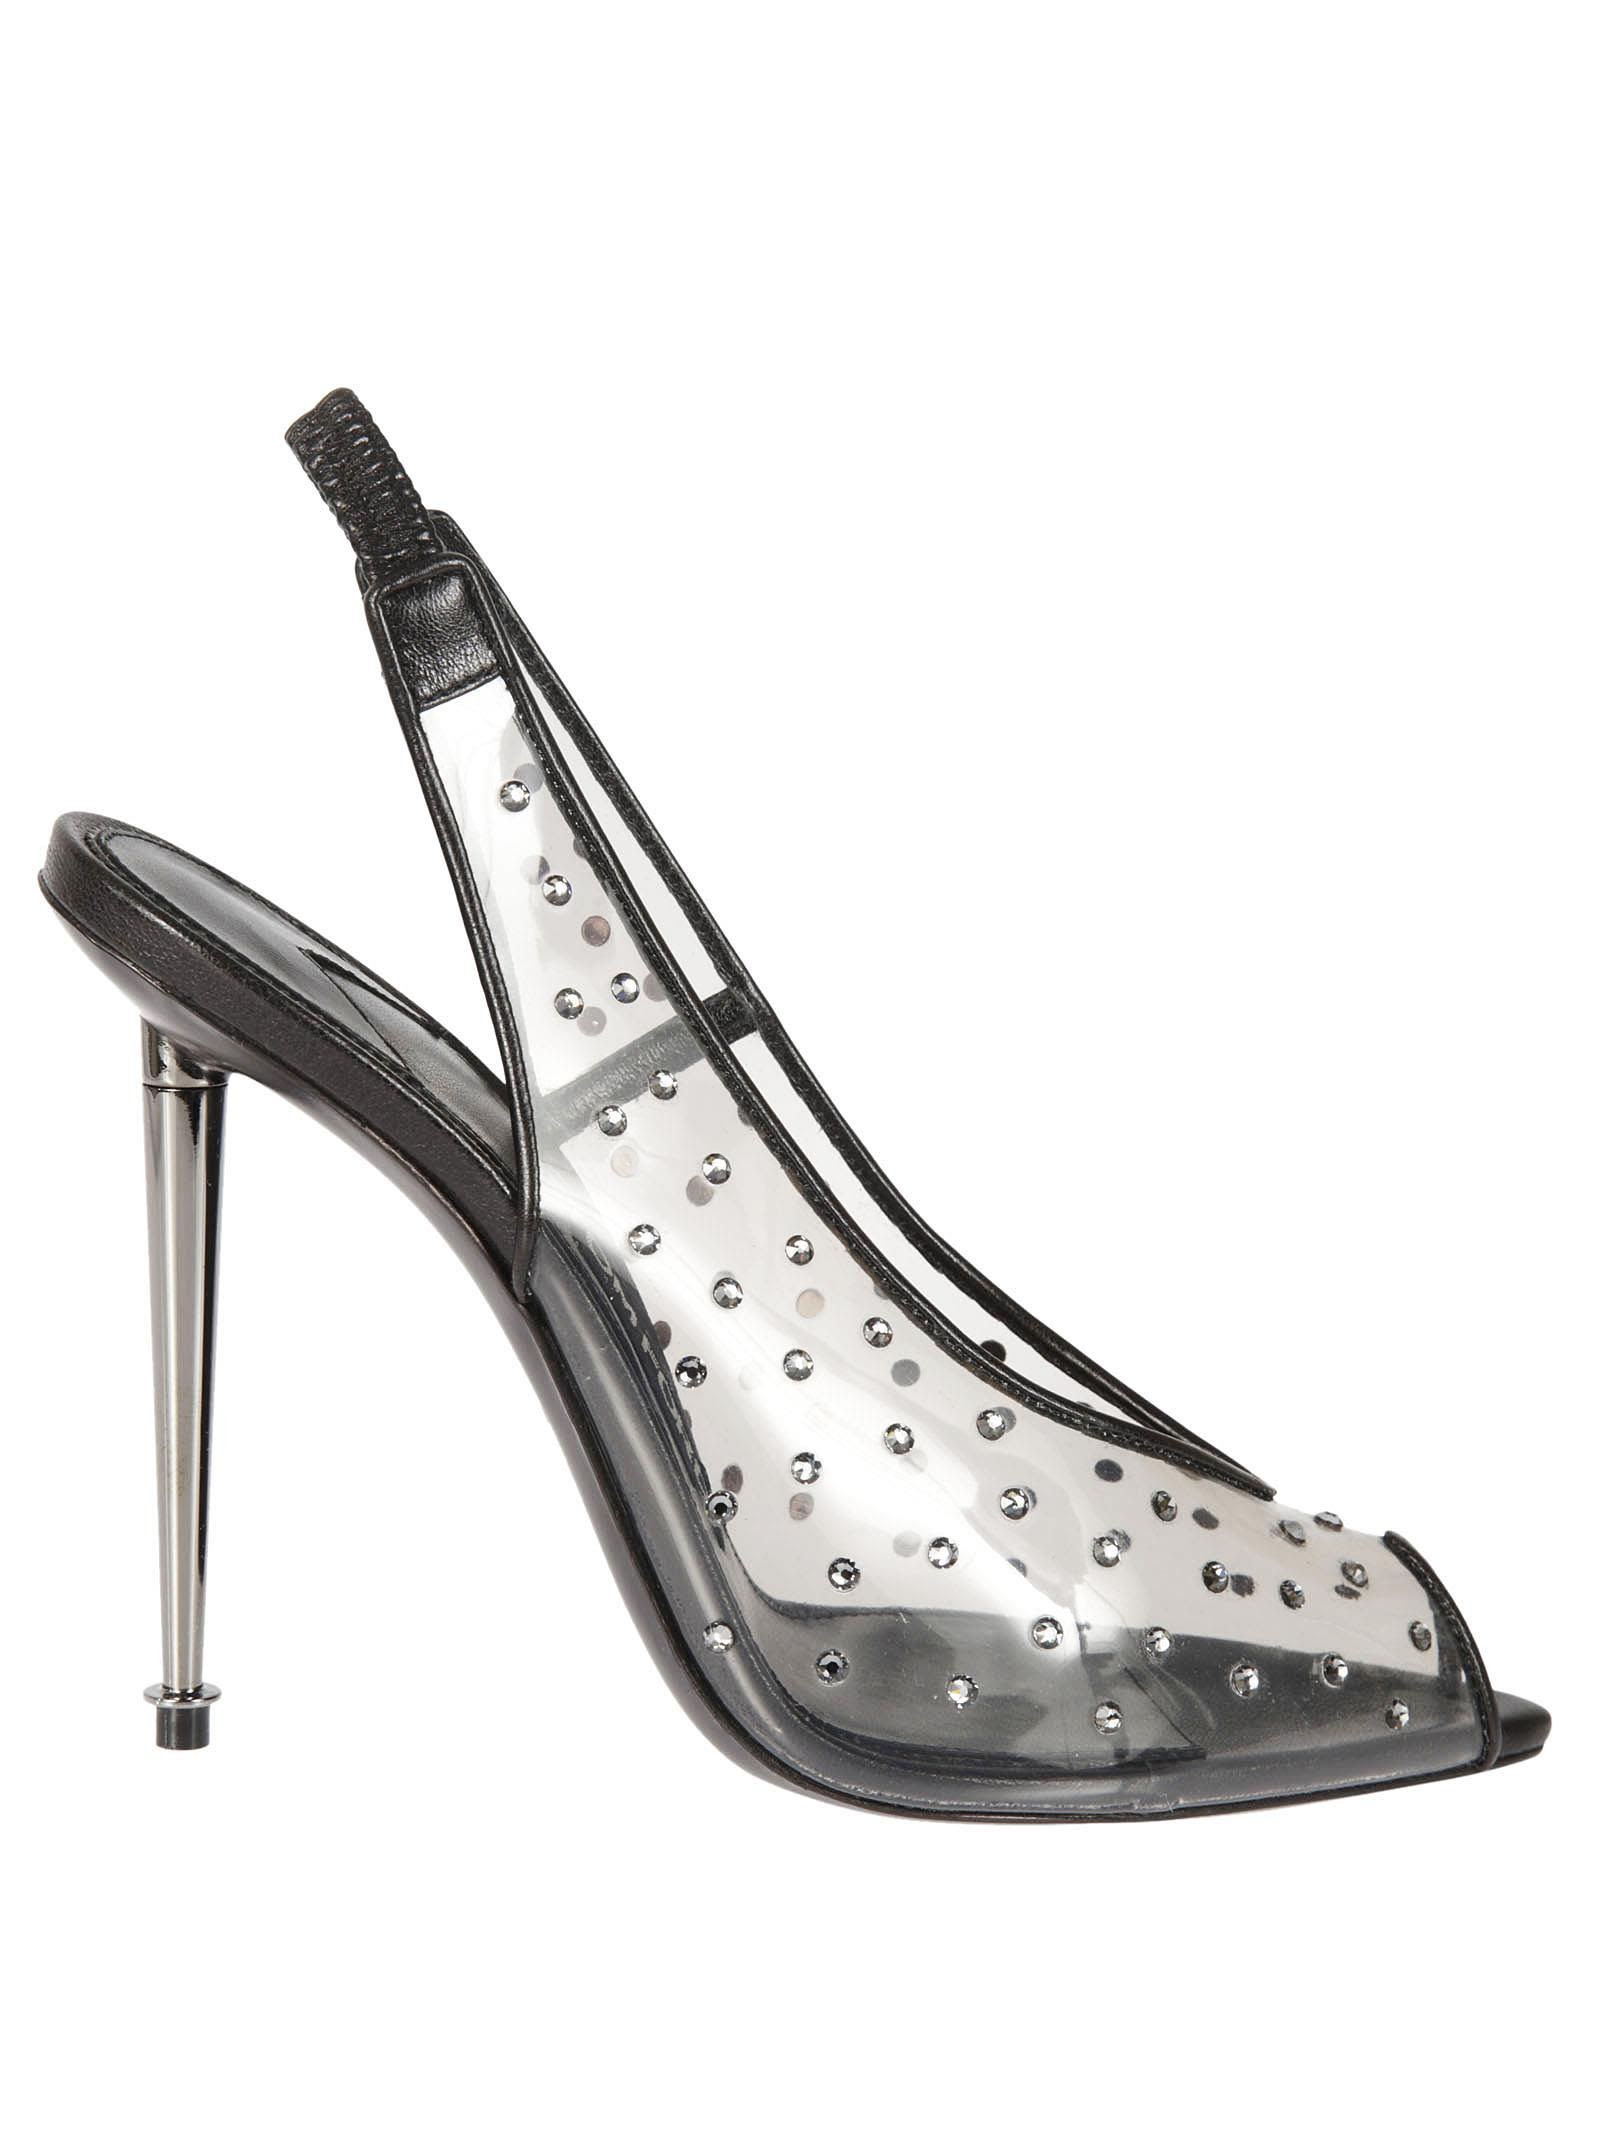 Tom Ford Studded Mary Jane Pumps